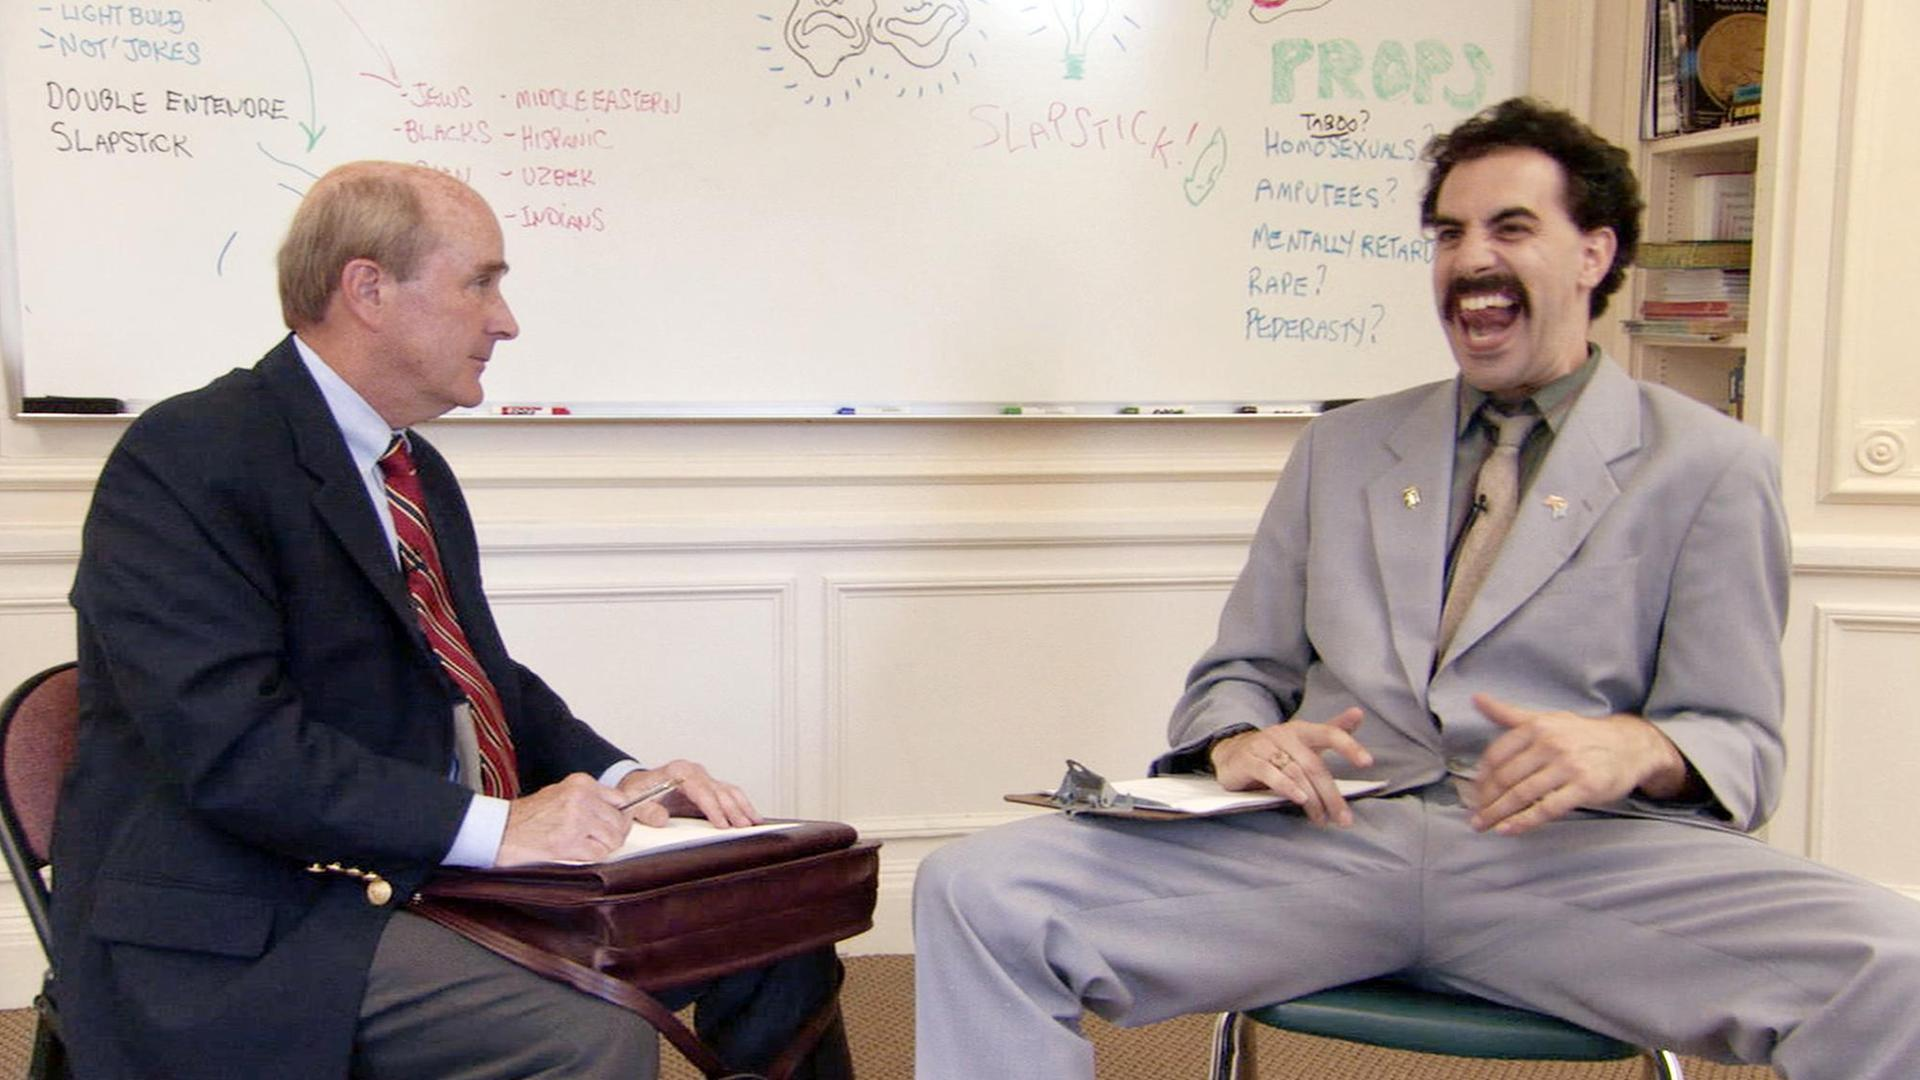 Image Gallery For Borat Cultural Learnings Of America For Make Benefit Glorious Nation Of Kazakhstan Filmaffinity